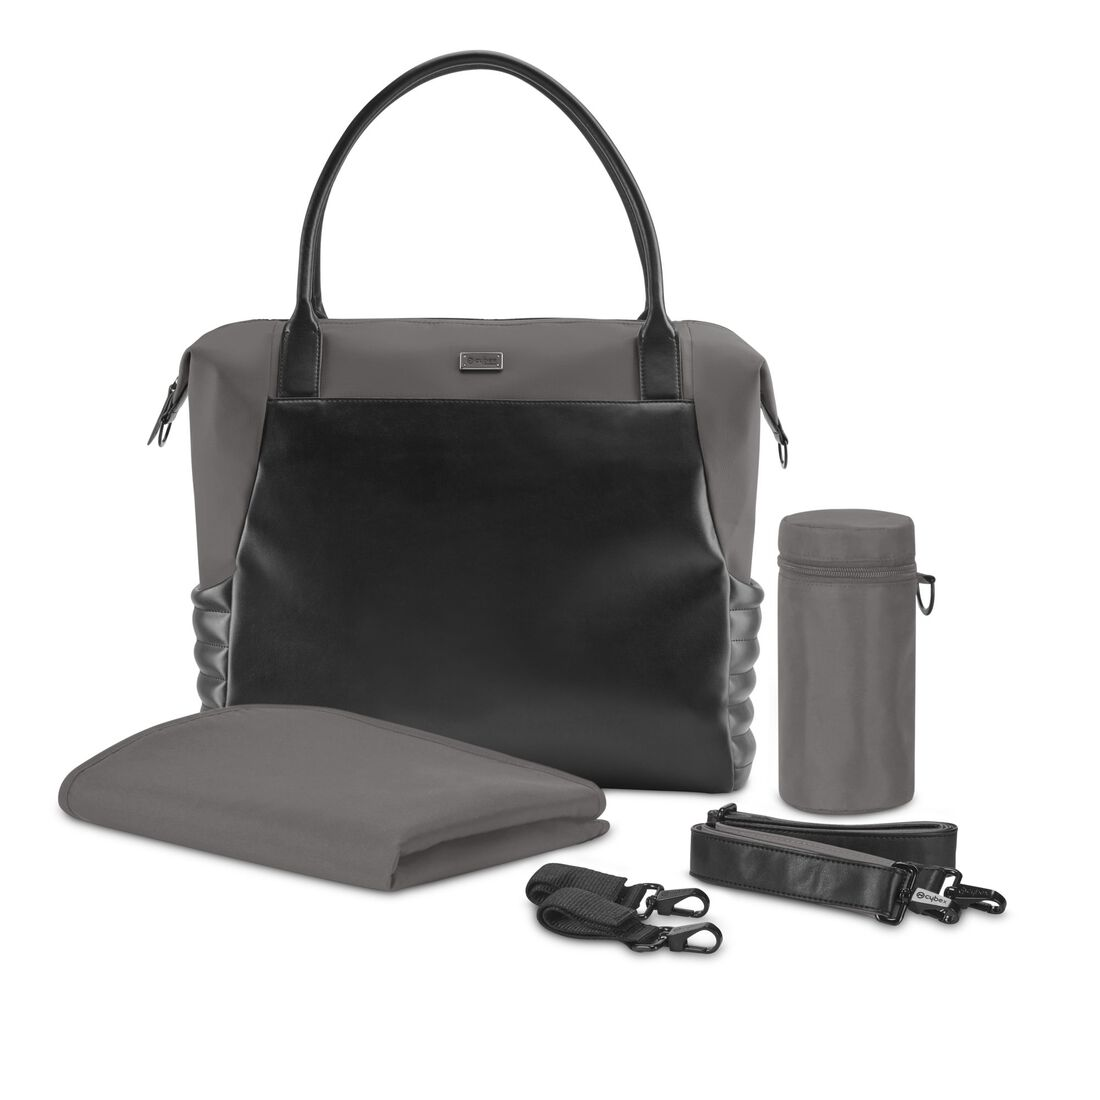 CYBEX Priam Changing Bag - Soho Grey in Soho Grey large image number 2